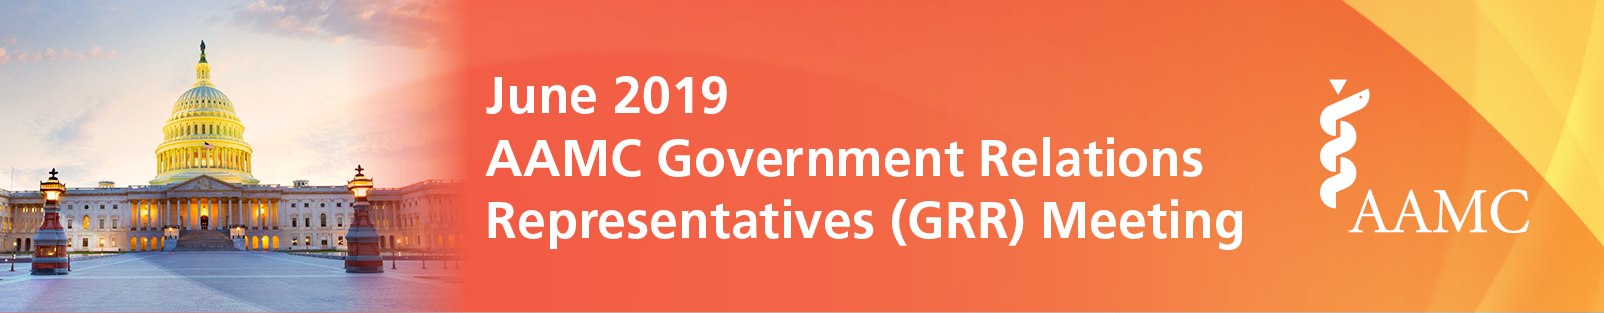 2019 Government Relations Representatives June Meeting